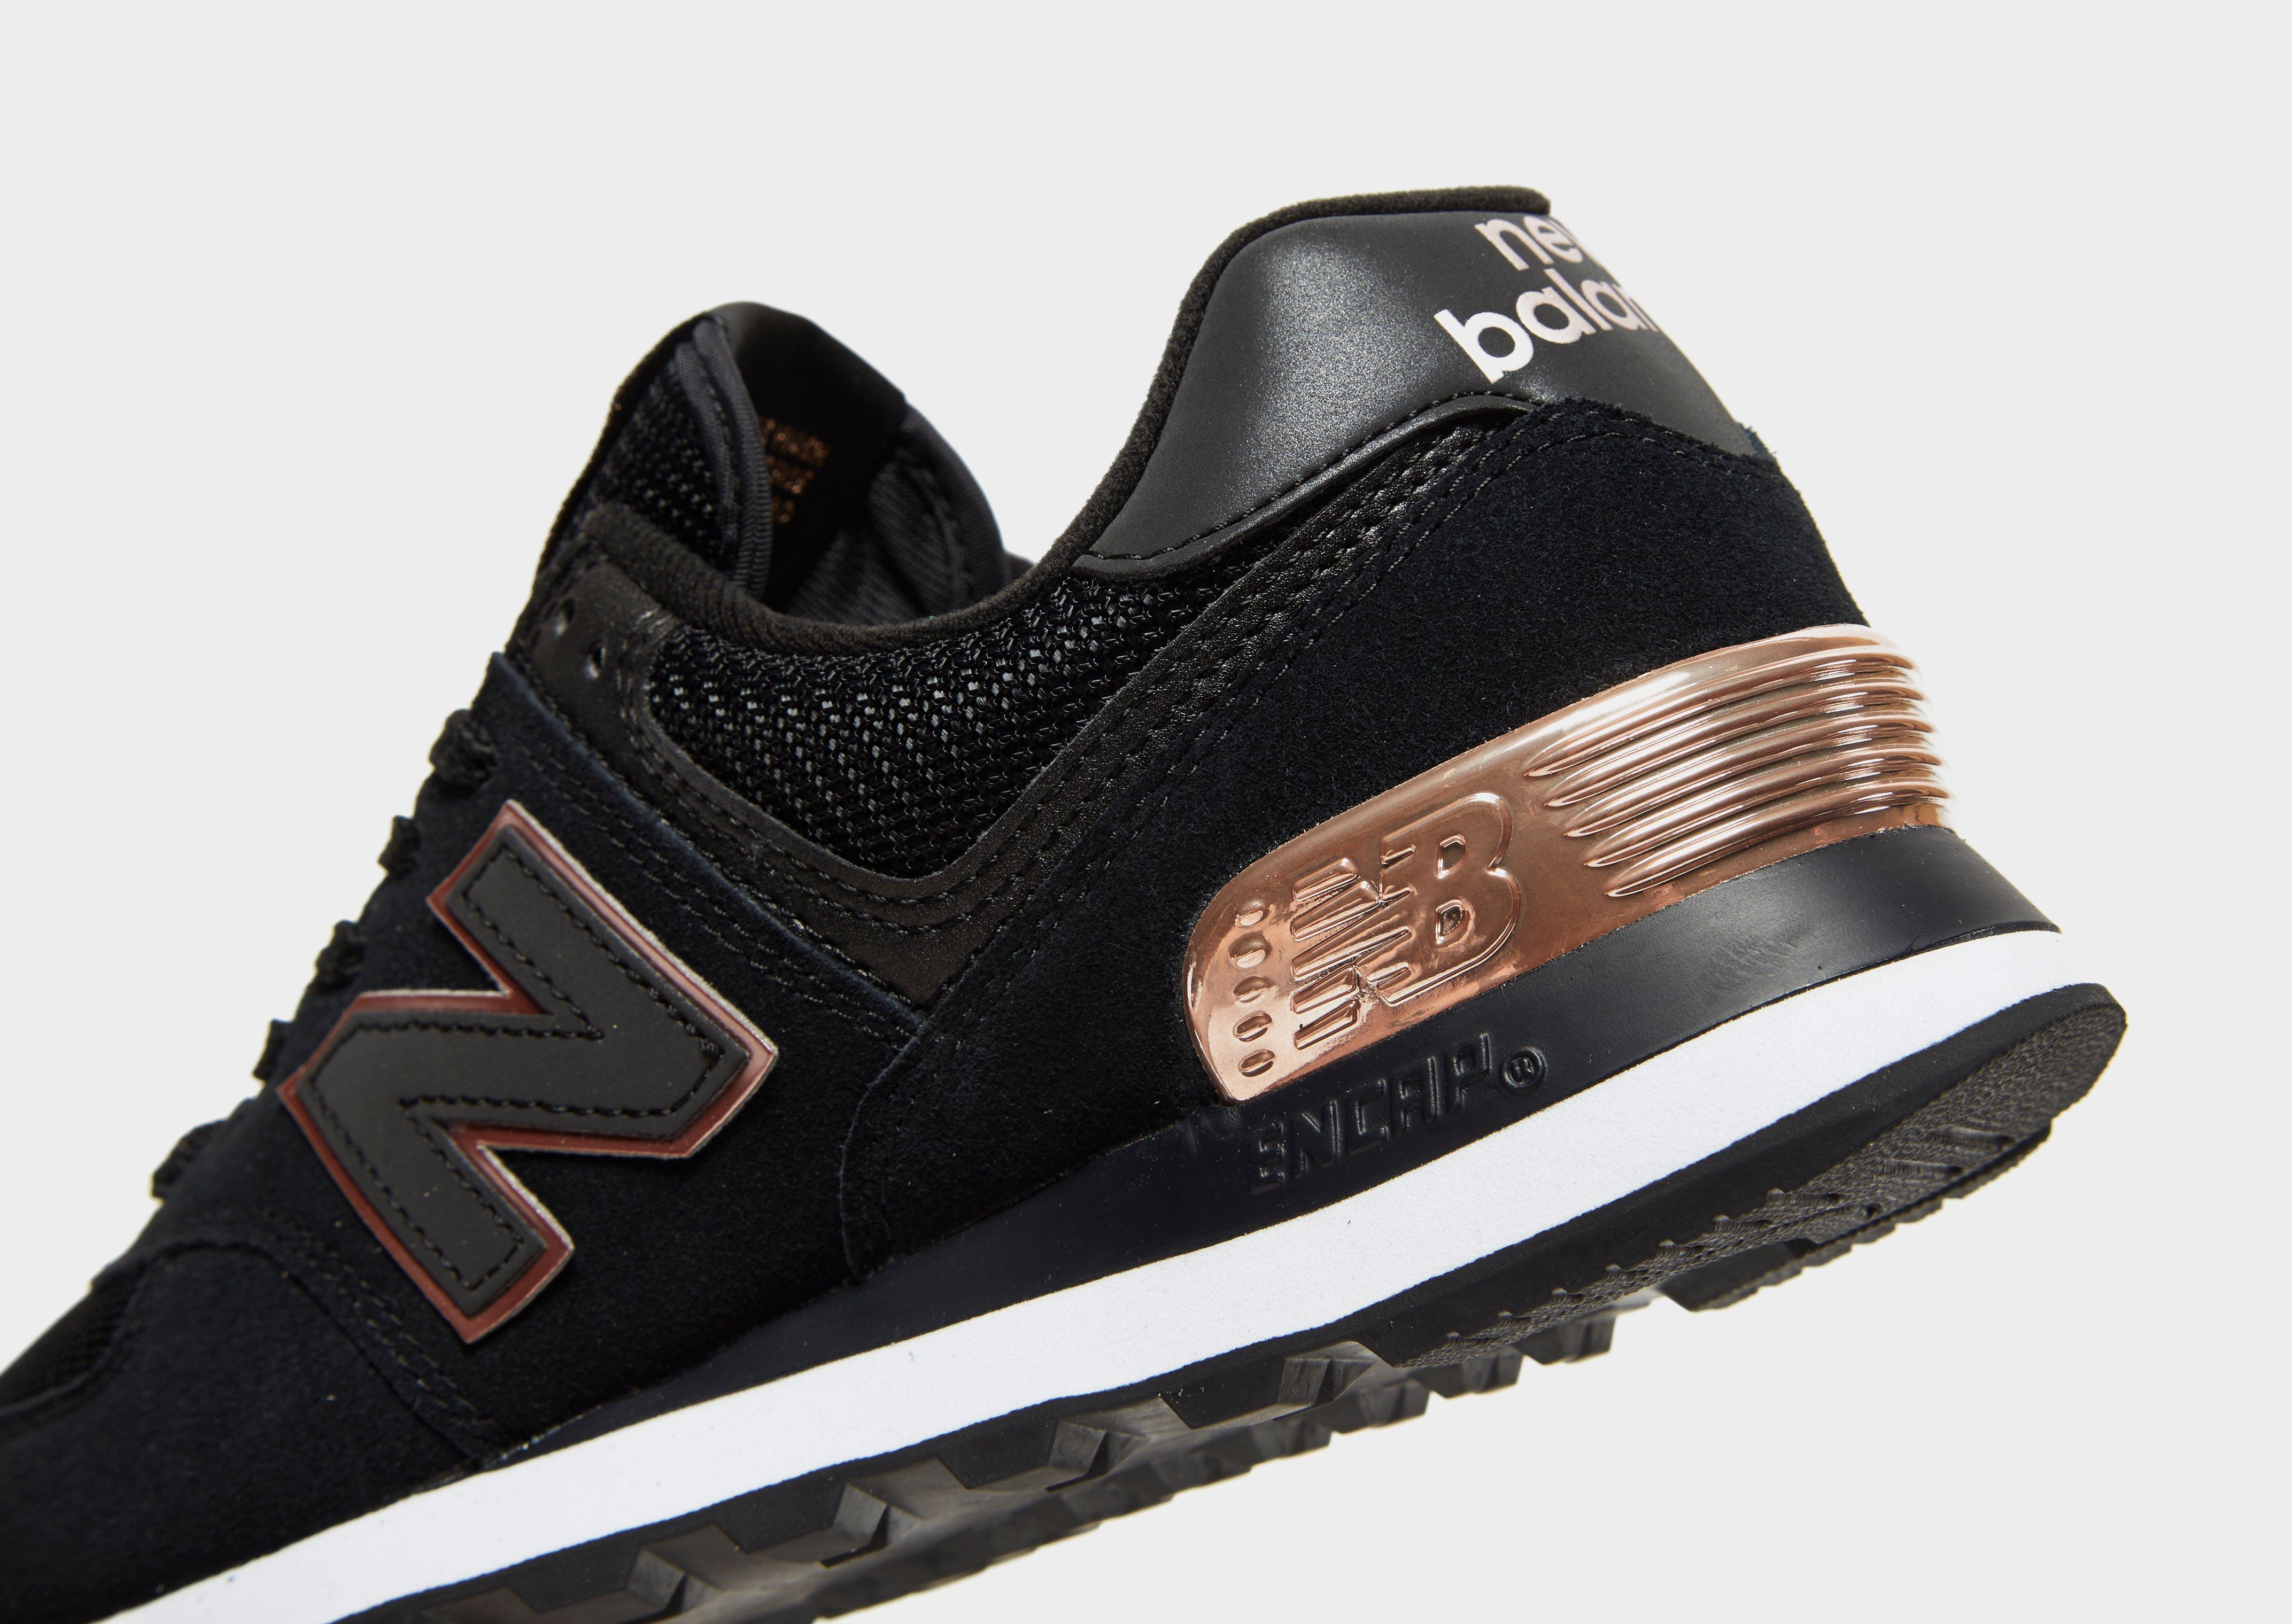 Ordinario Observatorio Girar en descubierto  Limited Time Deals·New Deals Everyday new balance jd mujer, OFF 71%,Buy!